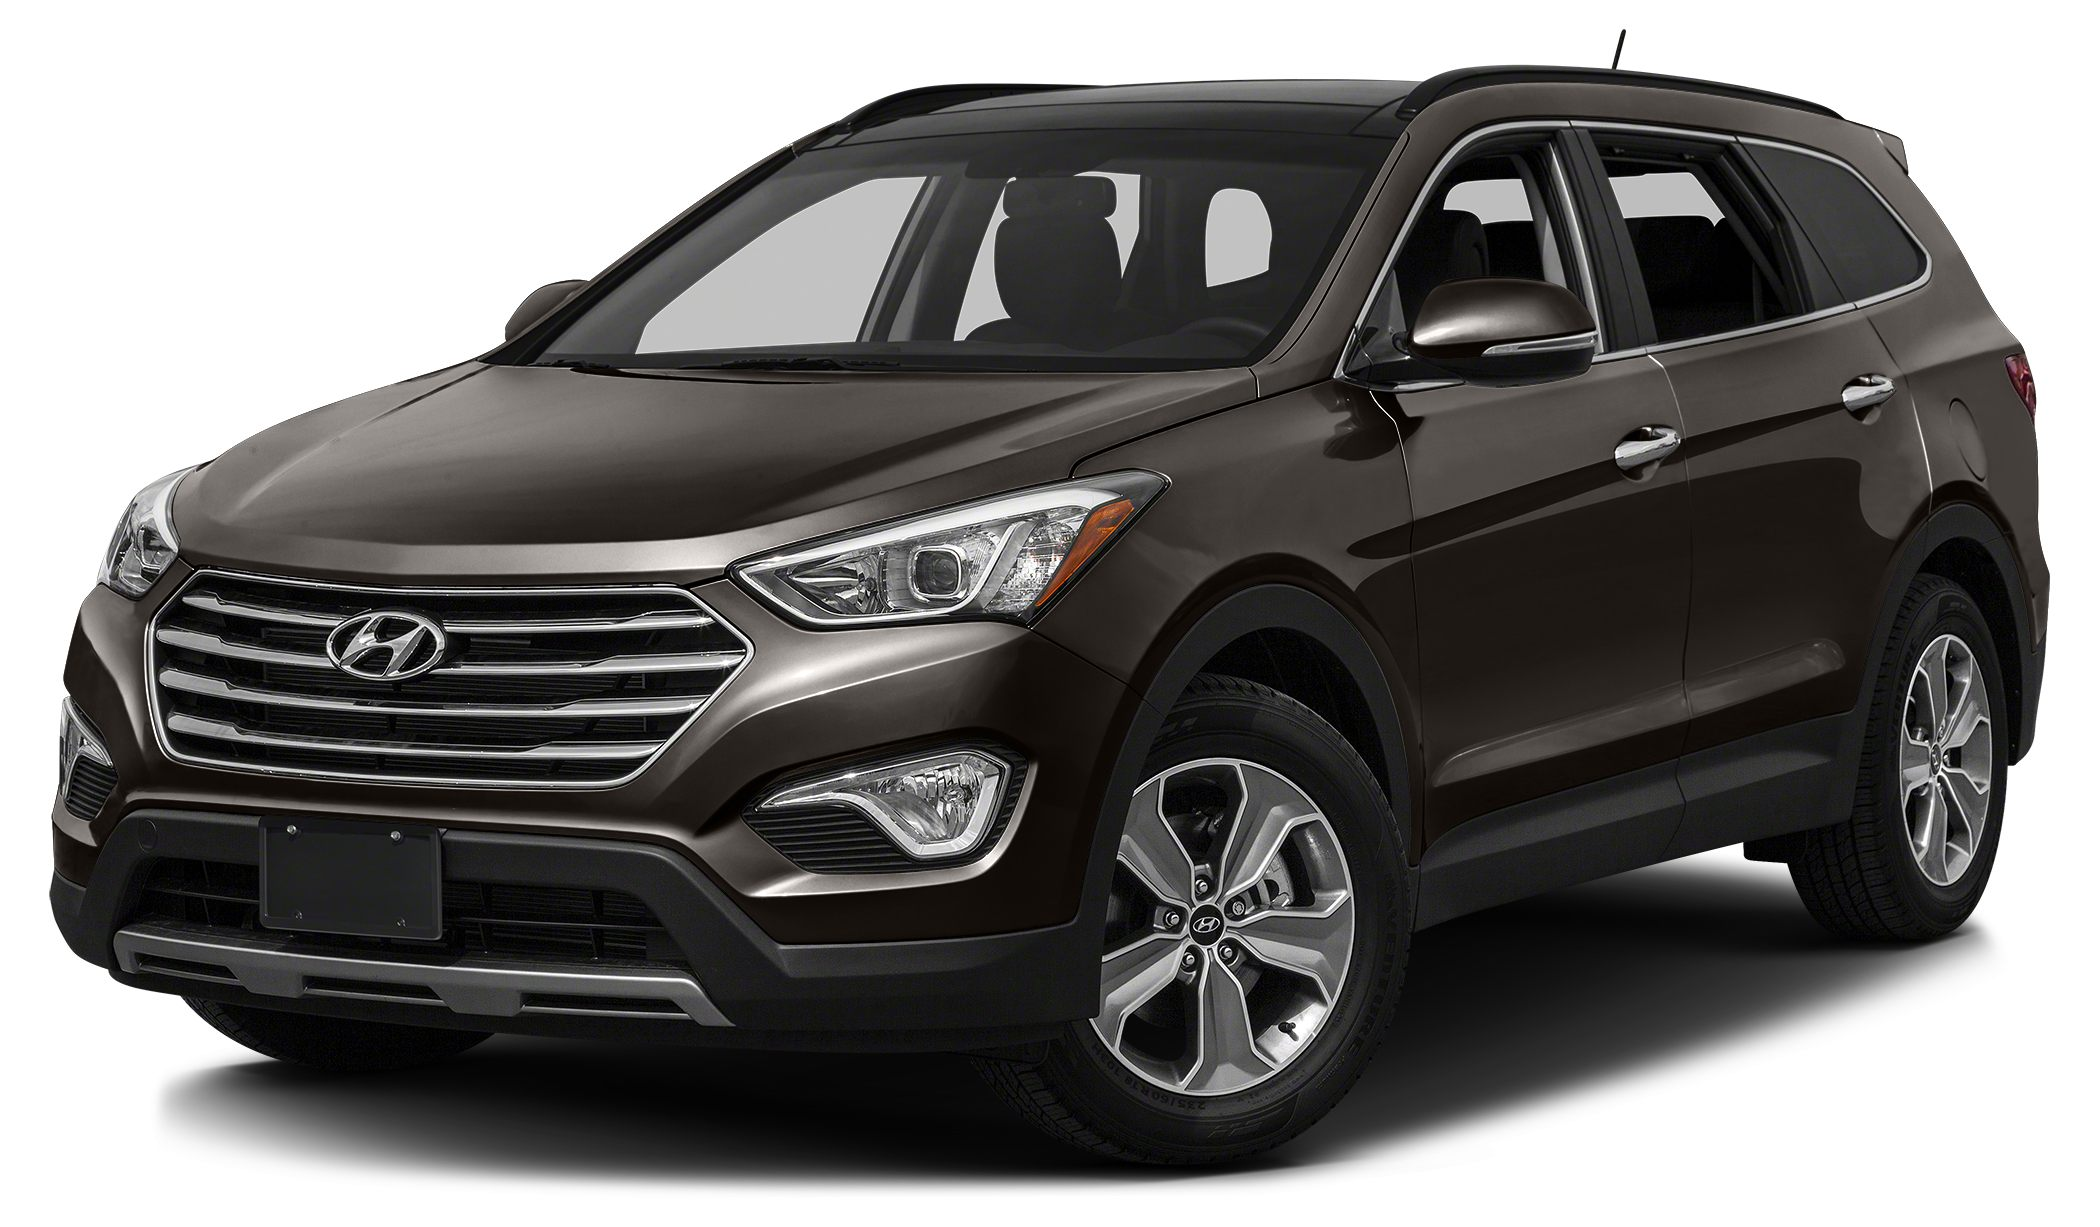 2014 Hyundai Santa Fe Limited Hyundai Certified and just 6k miles on this one owner AWD Limited Sa